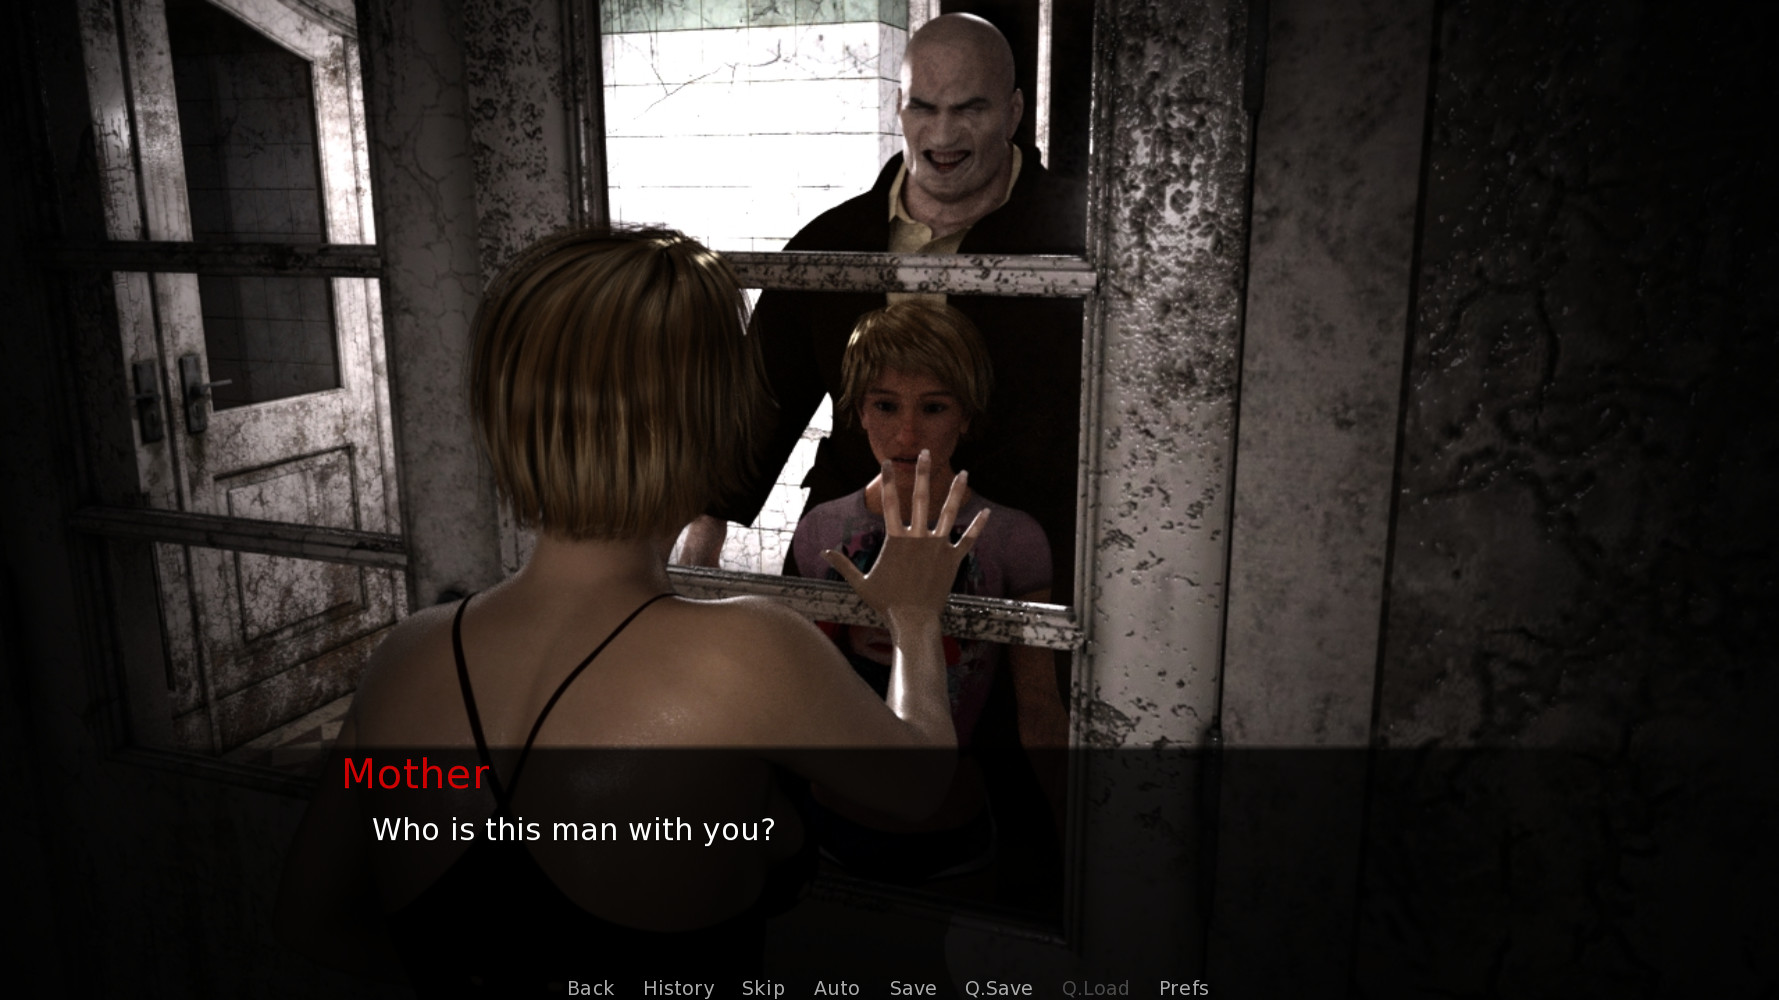 Valve criticised for allowing 'Rape Day' game on Steam